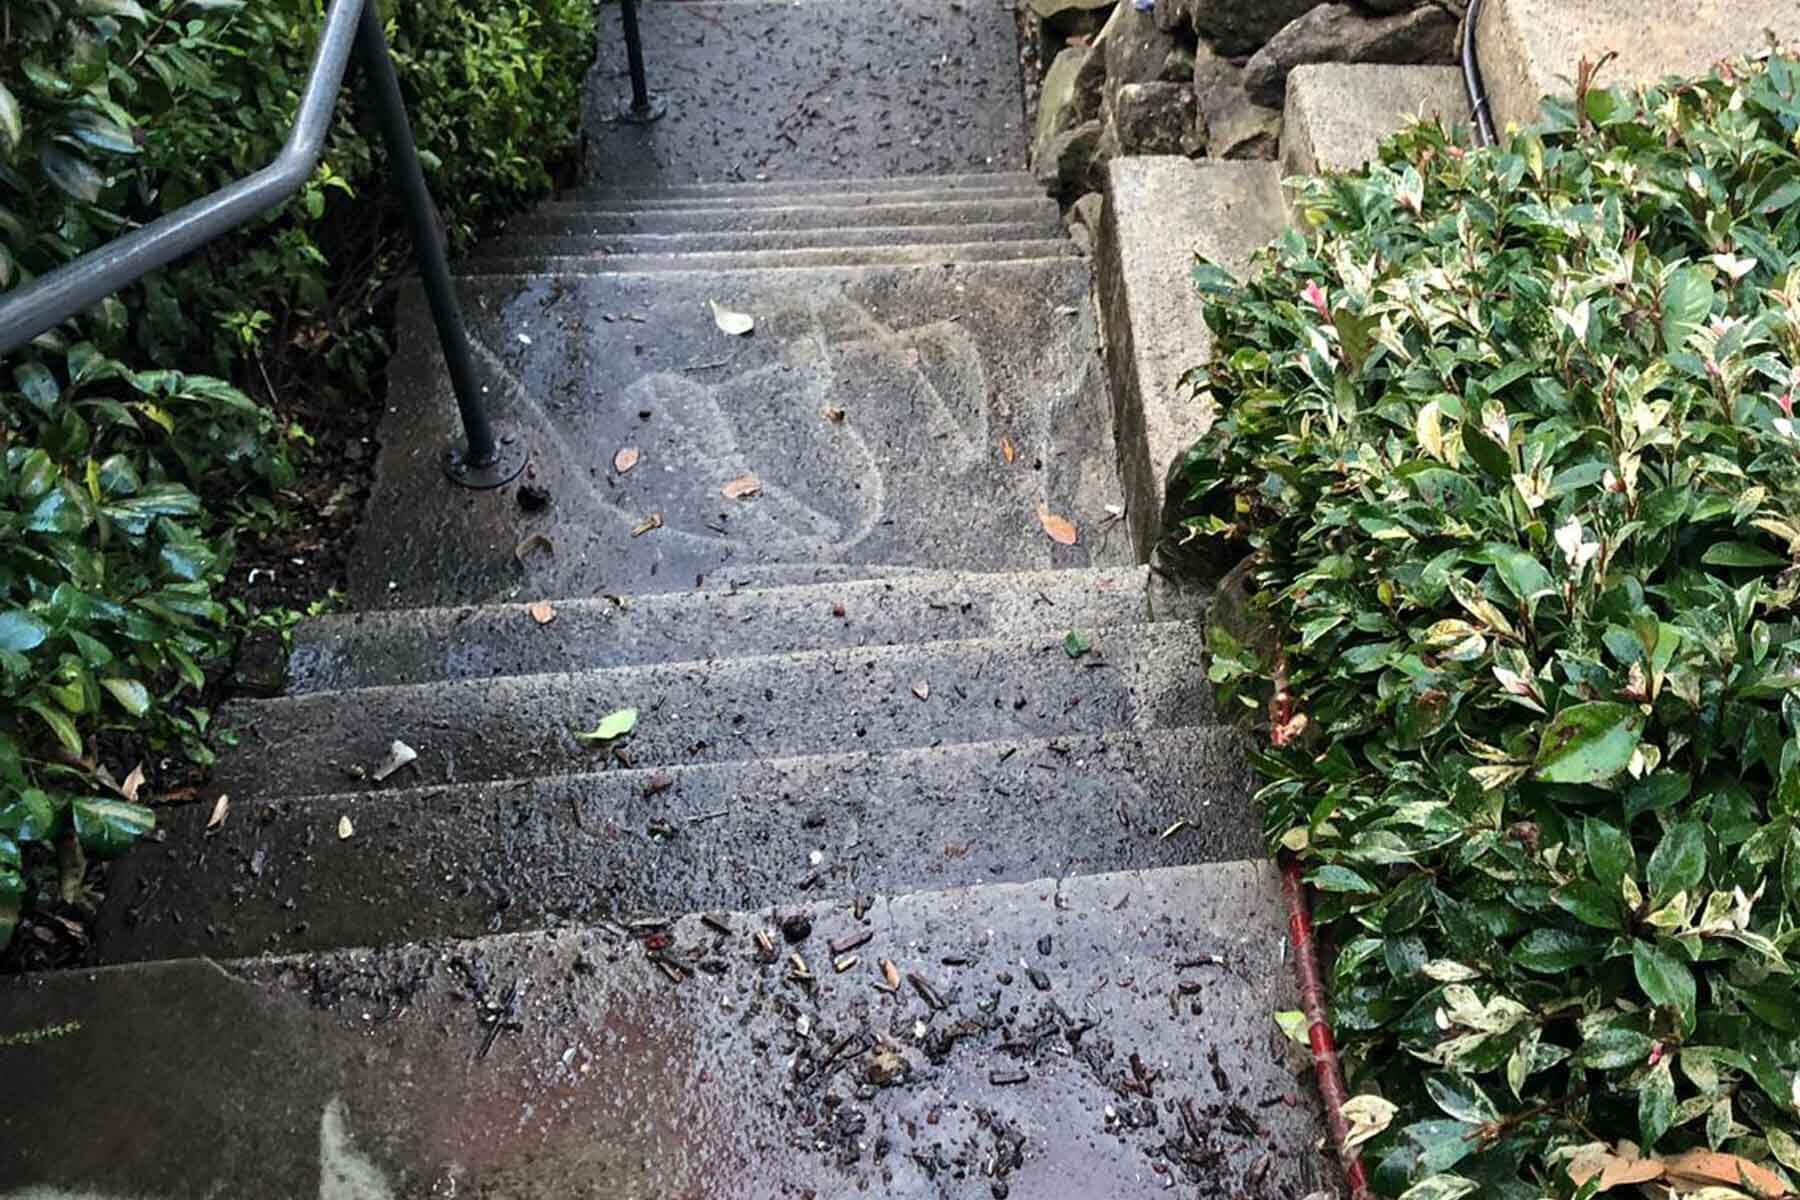 Exterior Staircase before pressure cleaning